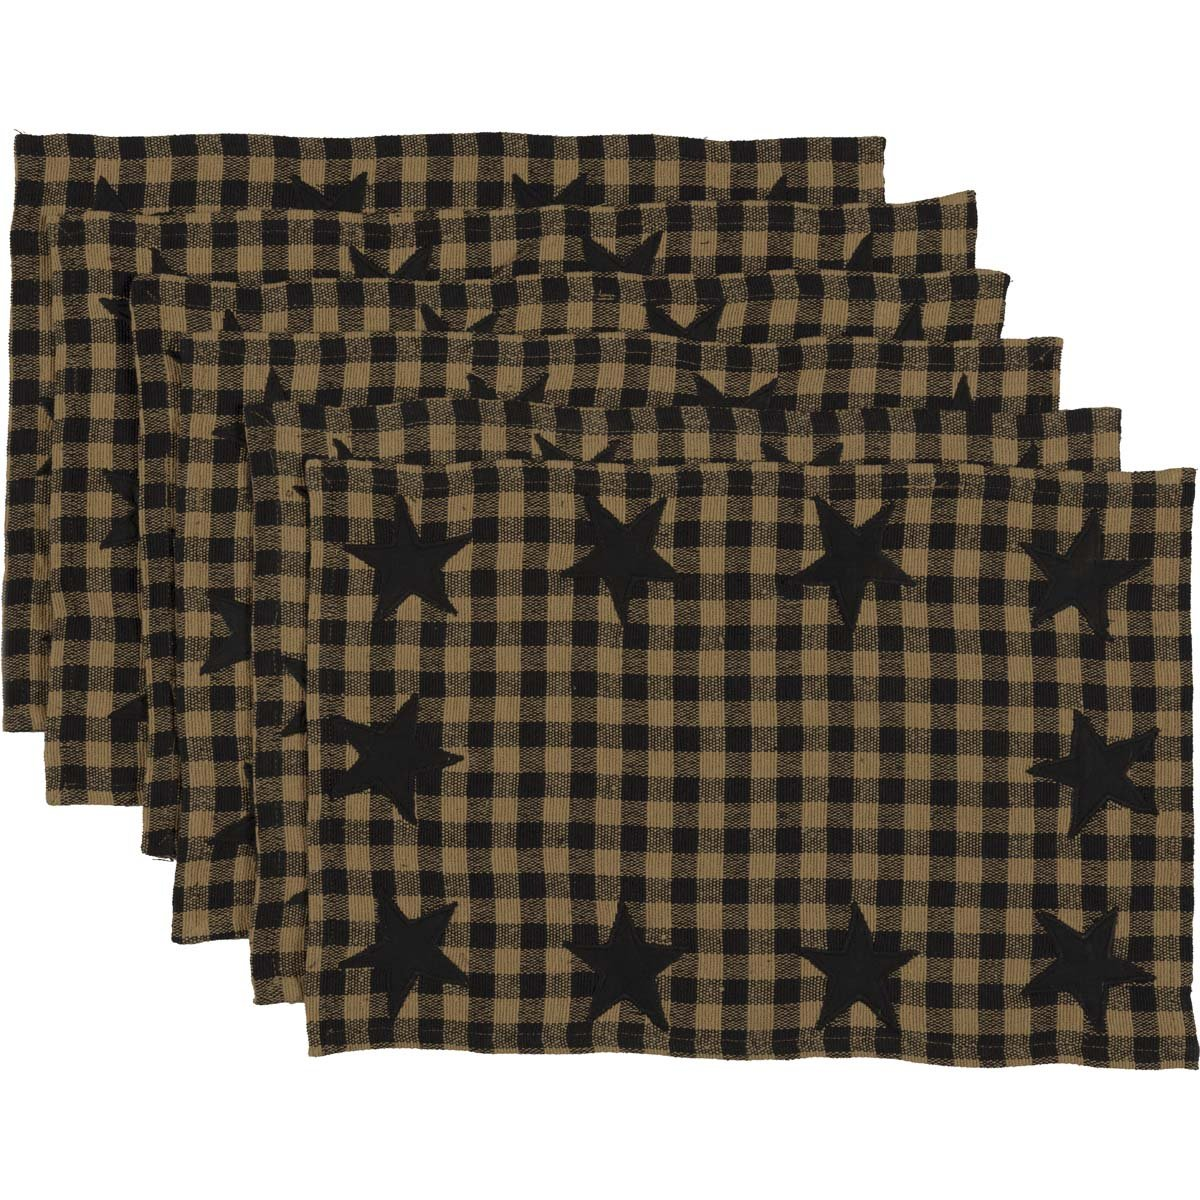 VHC Brands Classic Country Primitive Tabletop & Kitchen - Star Placemat Set of 6 Black